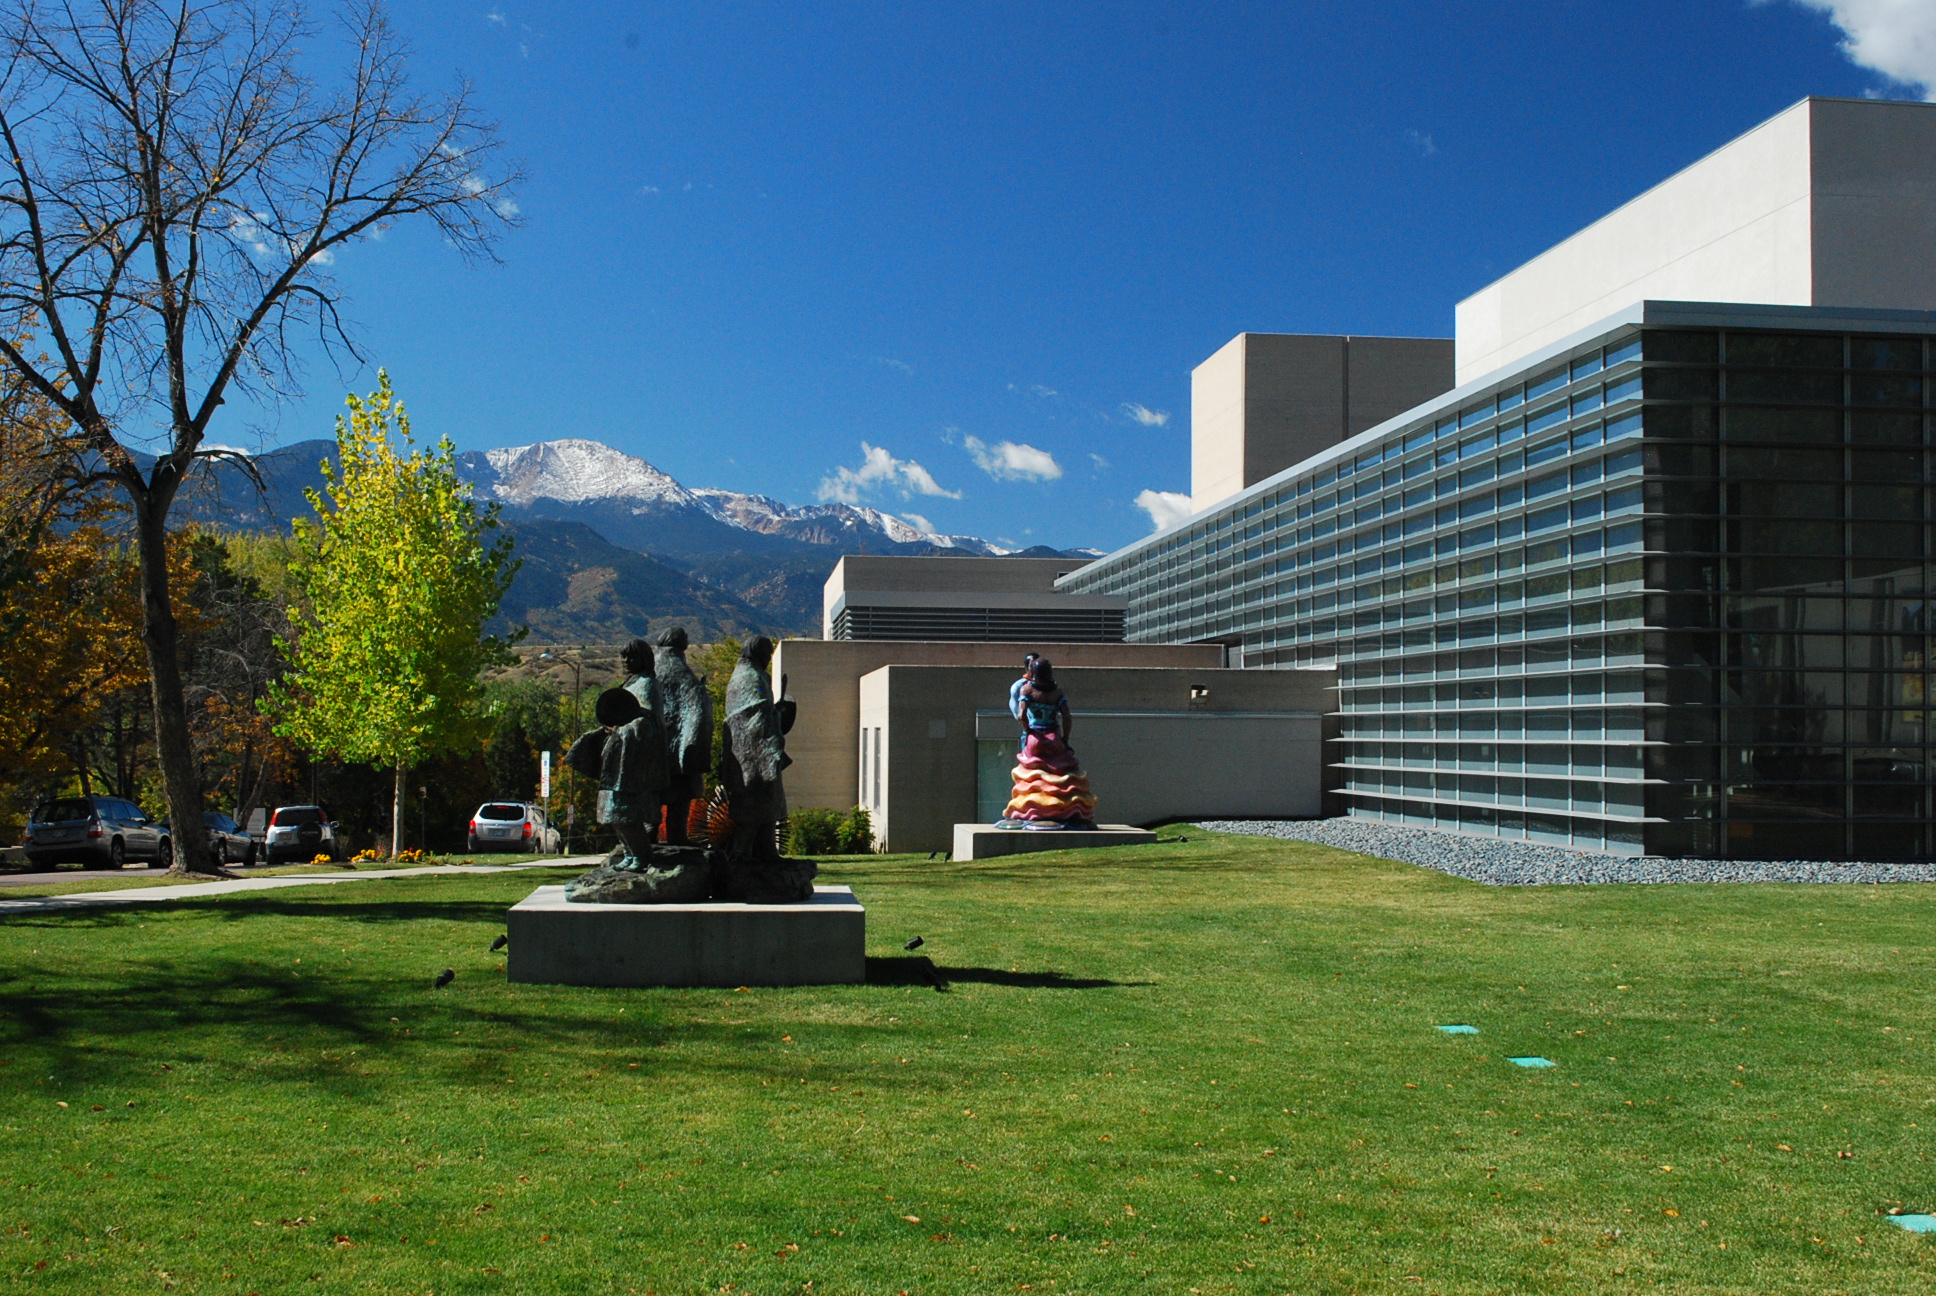 Art colorado springs - File Pikes Peak Behind Colorado Springs Fine Arts Center Jpg